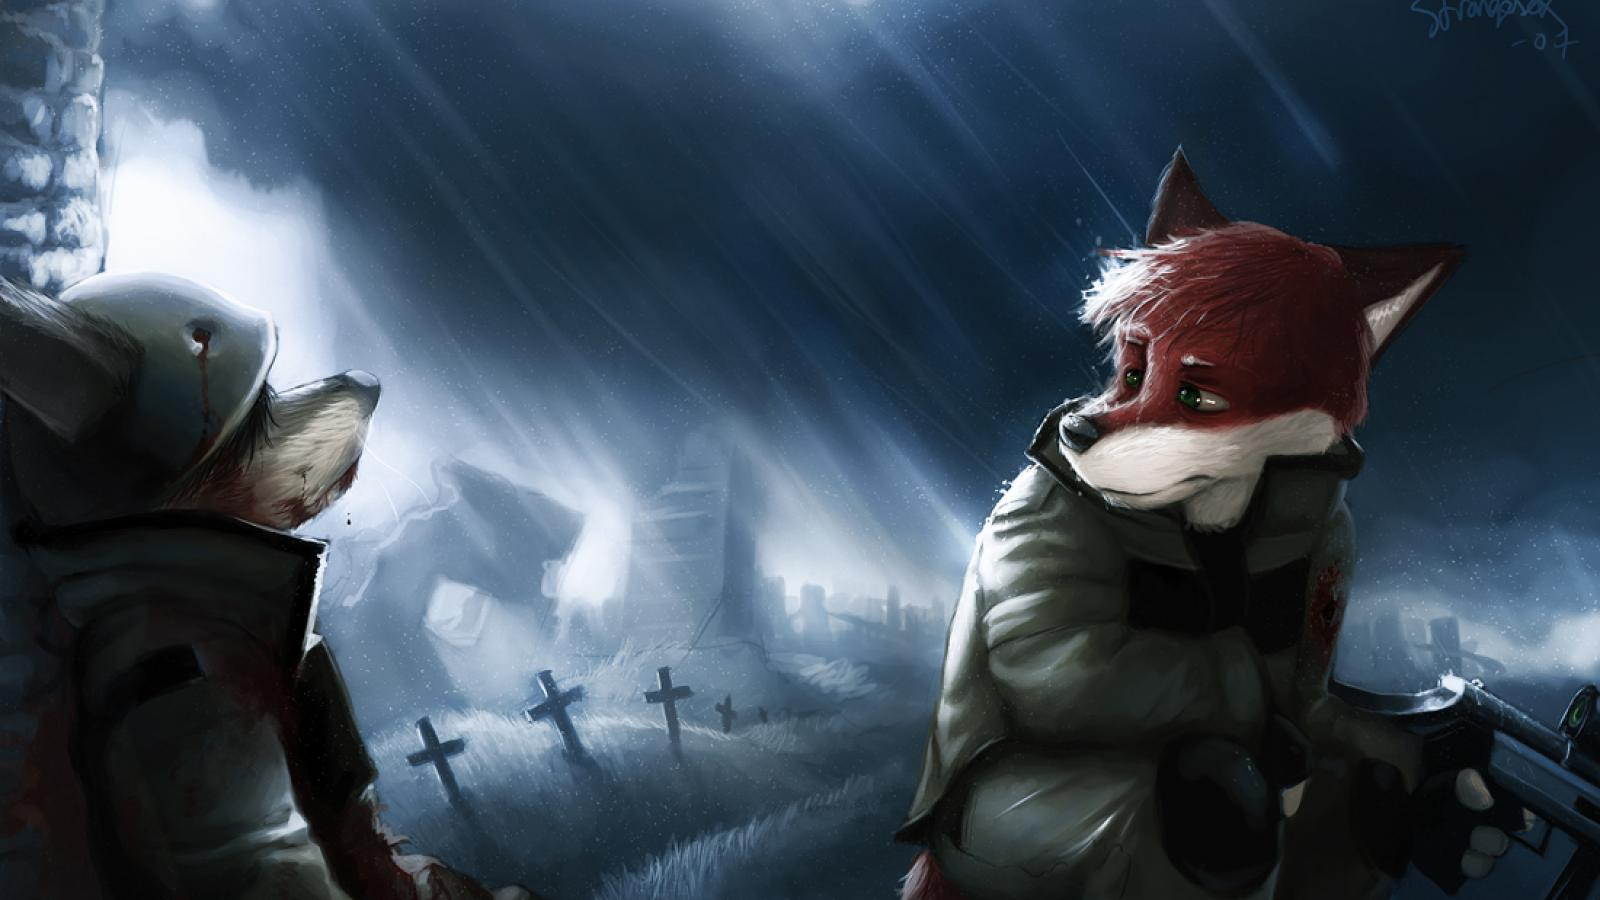 Furry Wallpaper 177871 High Quality And Resolution Wallpapers 1600x900